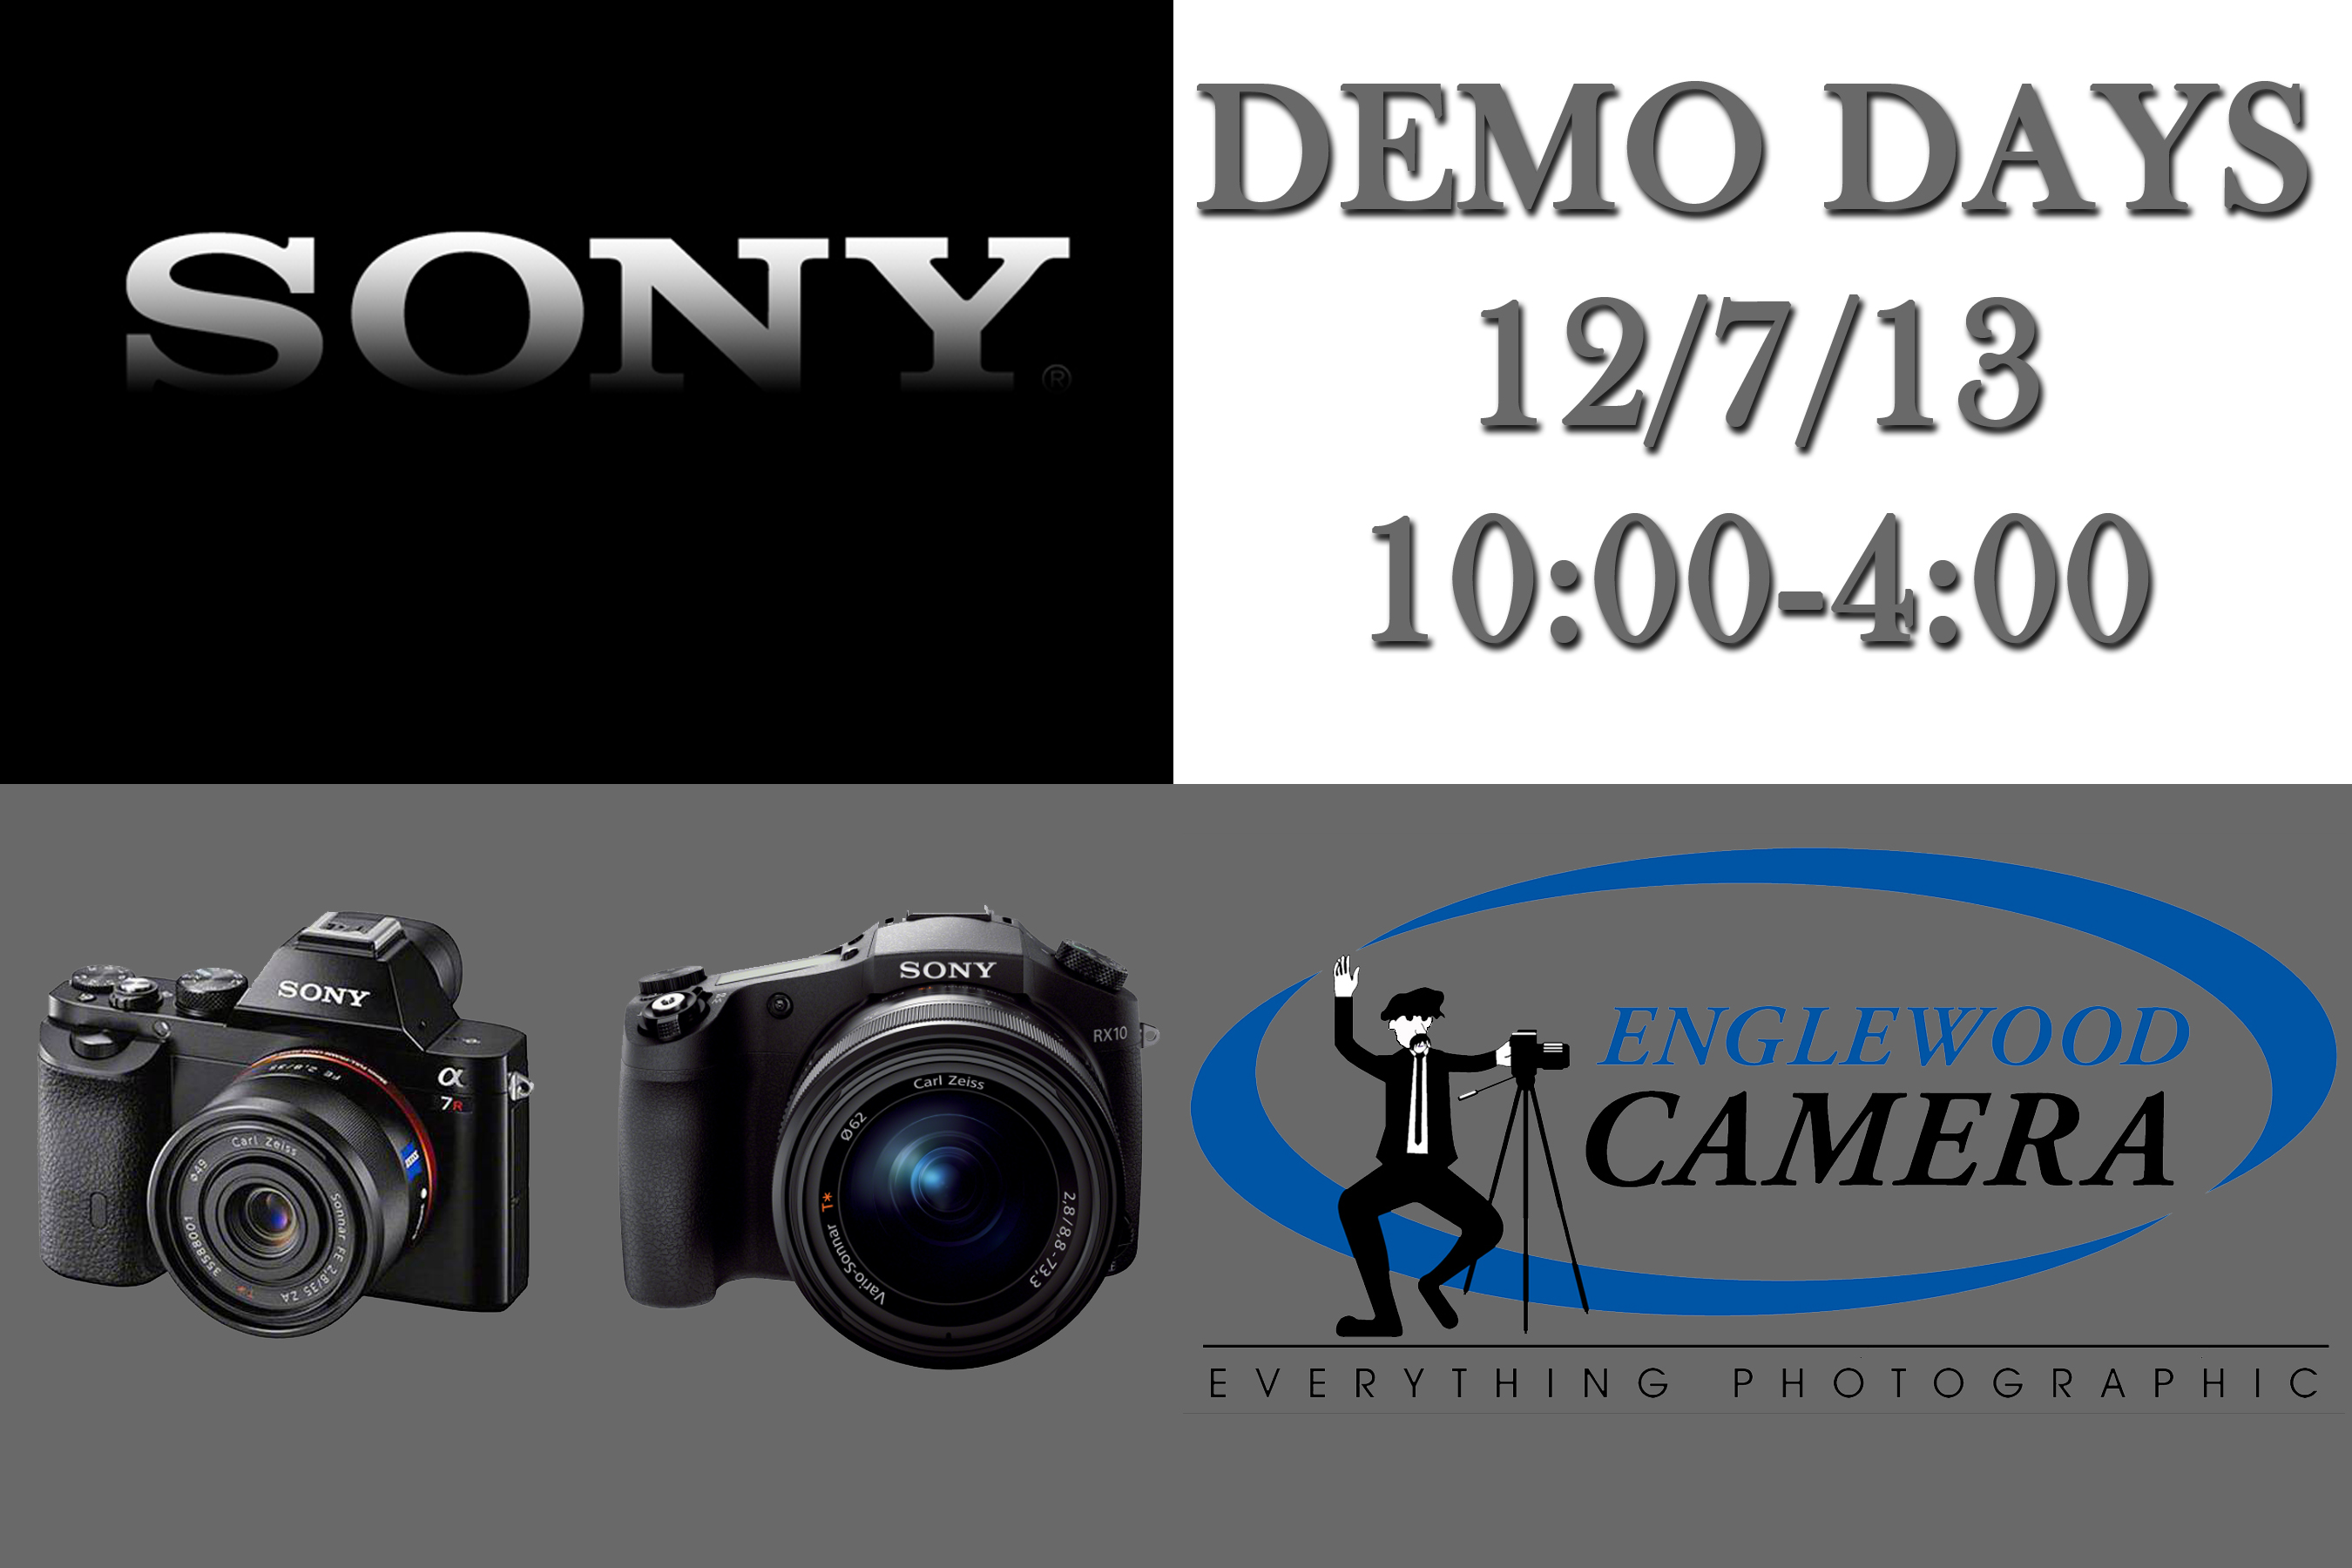 Sony Demo Days at Englewood Camera!